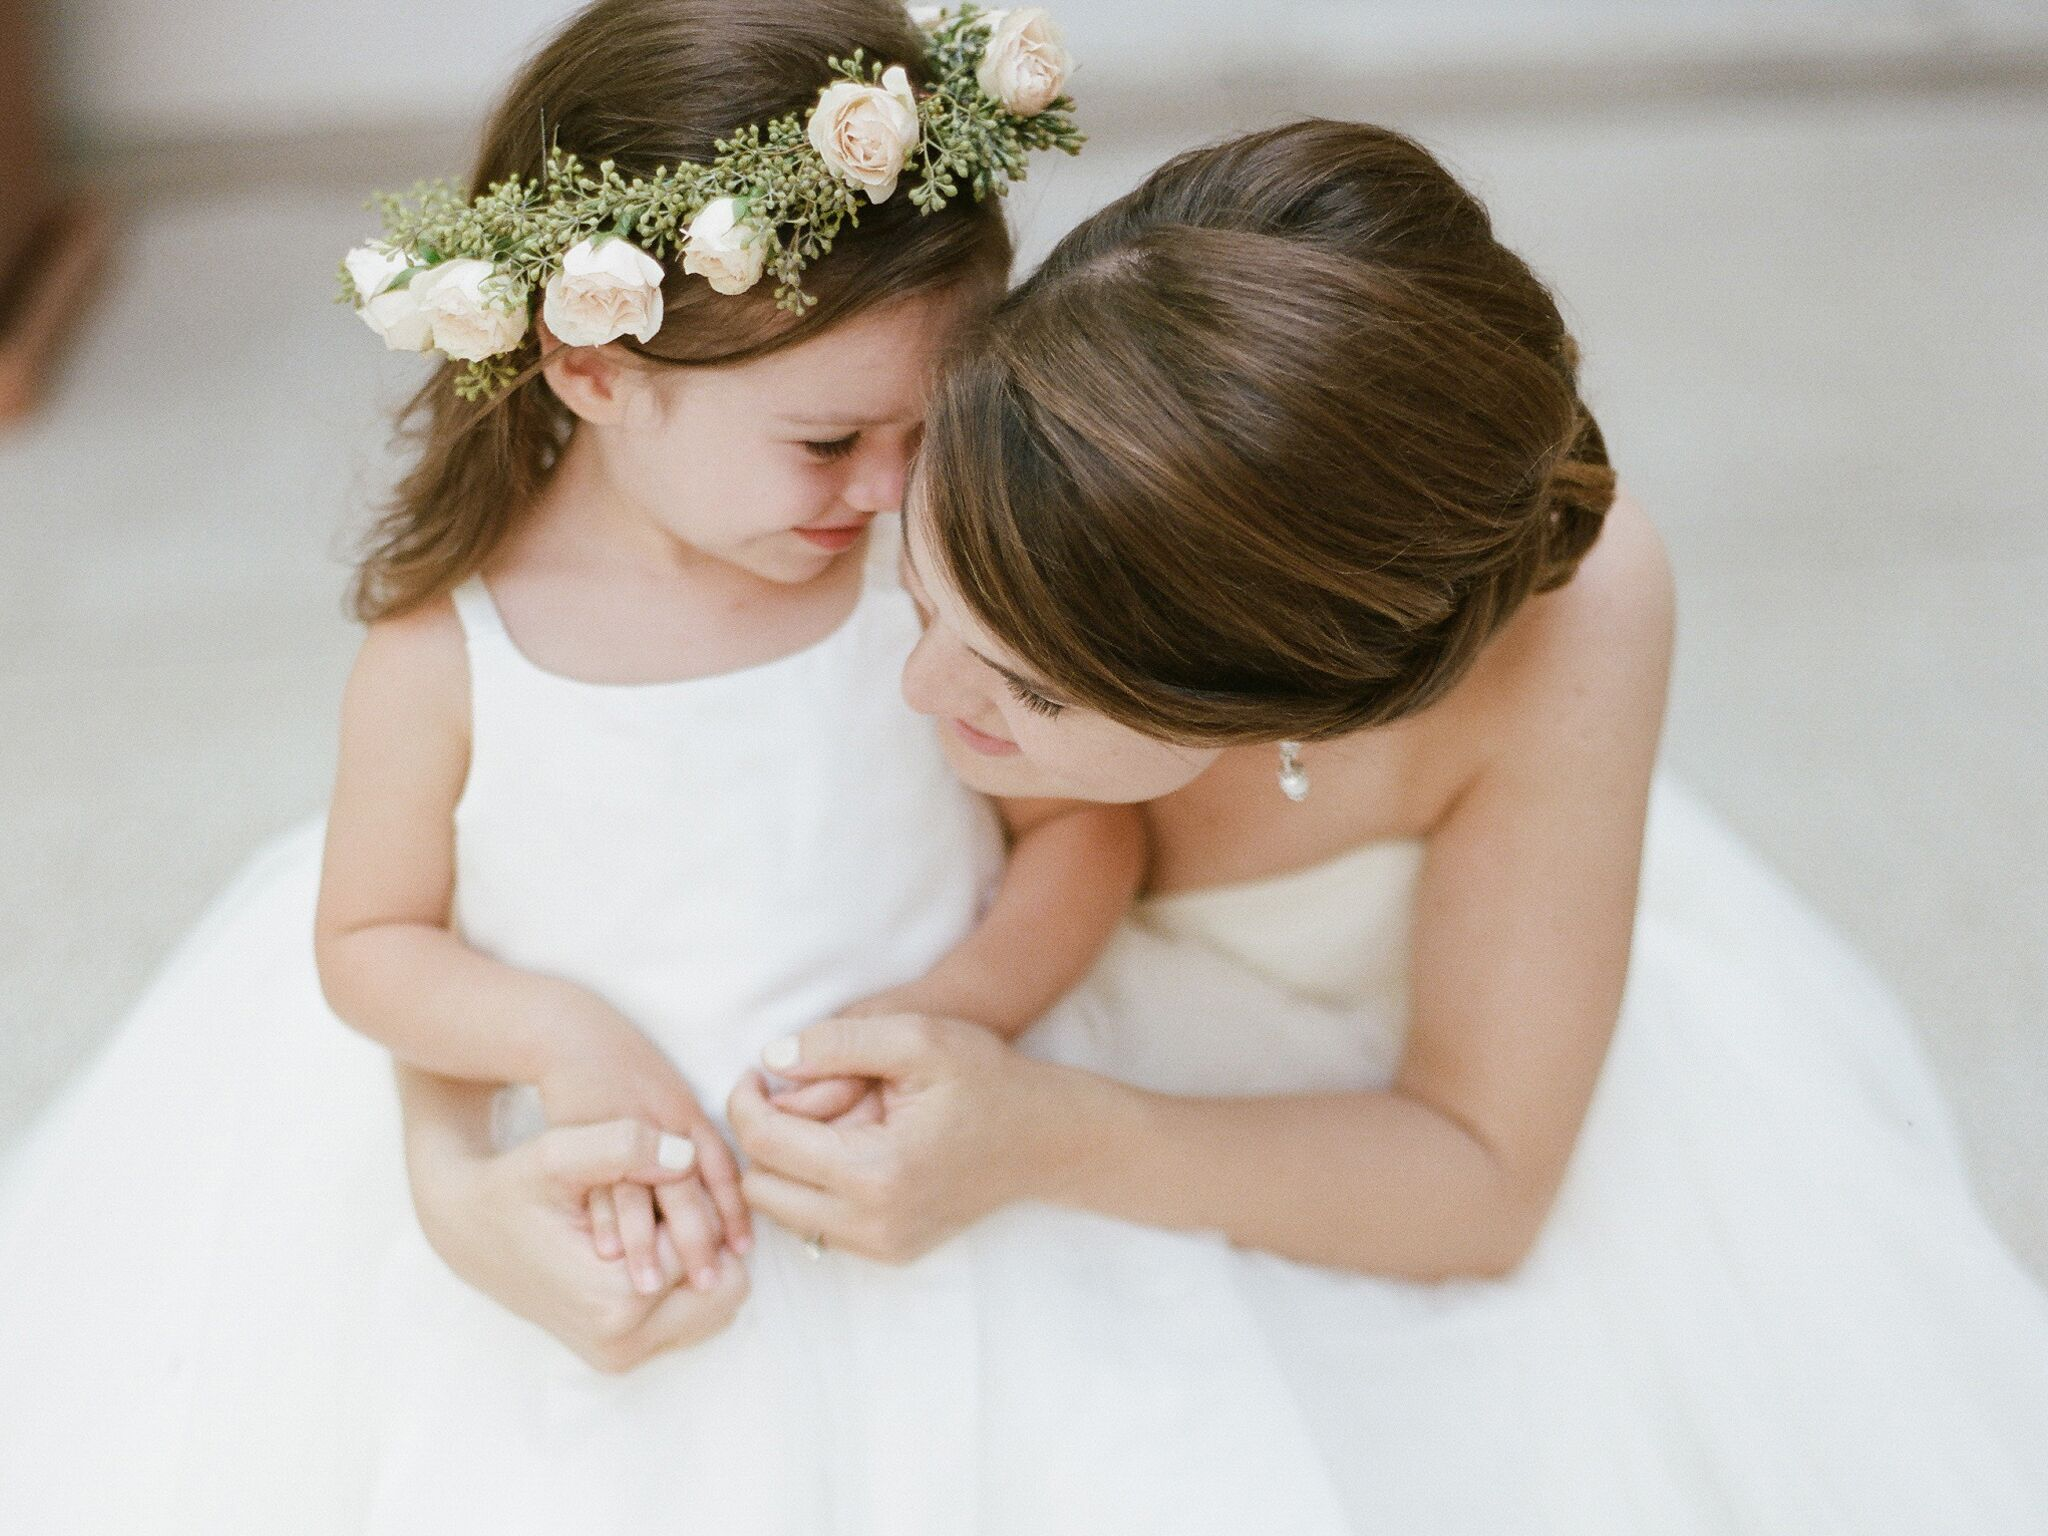 12 Cute Flower Girl Dresses for Every Style and Budget